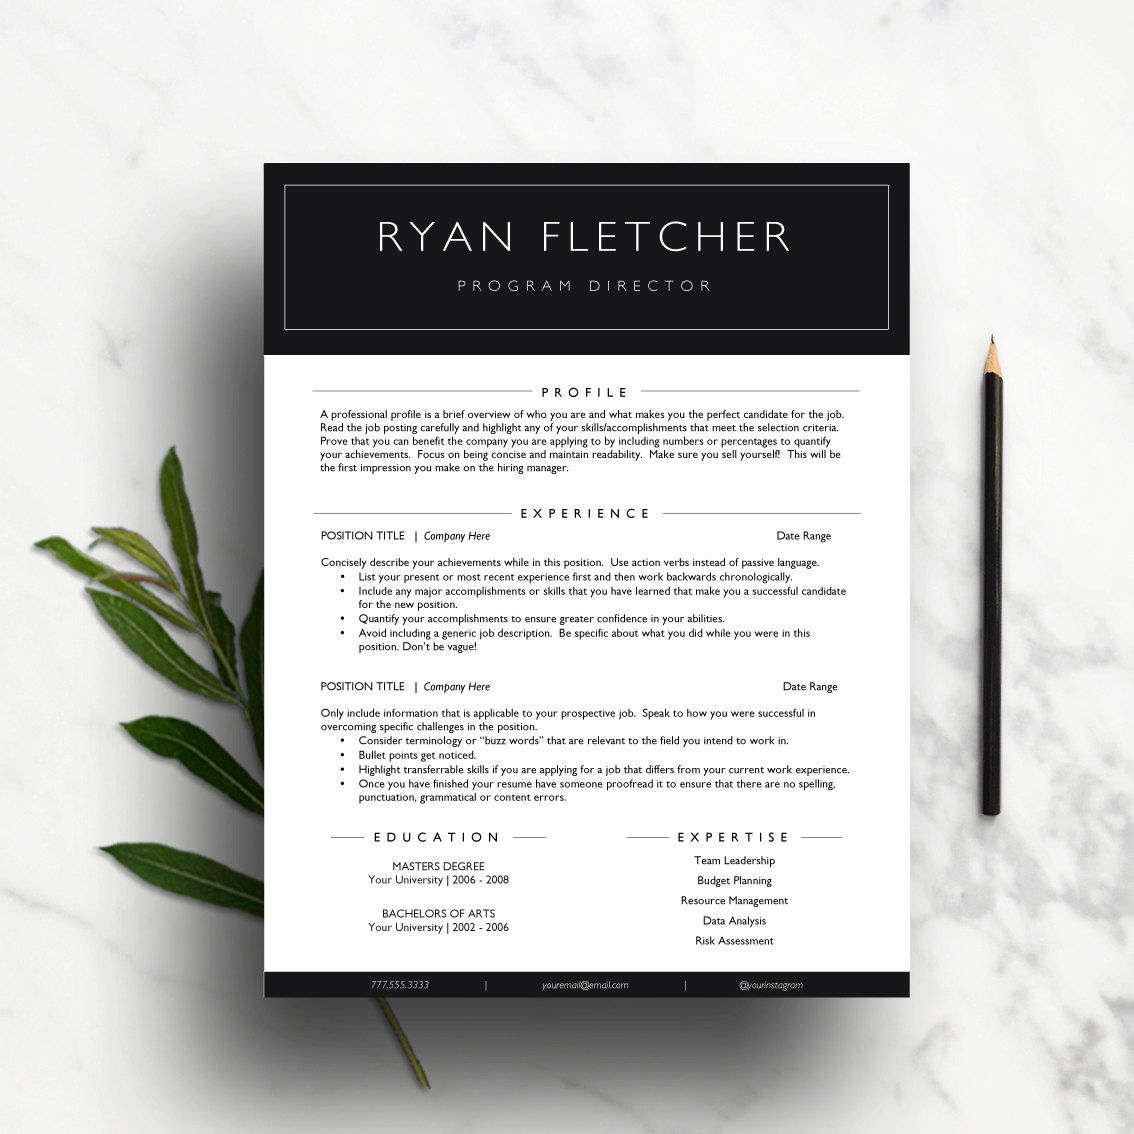 Wonderful 10 Best Resumes Thin 10 Steps To Creating An Effective Resume Square 100 Free Resume 1099 Employee Contract Template Young 1300 Resume Government Samples Selection Criteria Yellow15 Minute Schedule Template Professional Resume Template For Word (1 \u0026 2 Page Resume, Cover ..